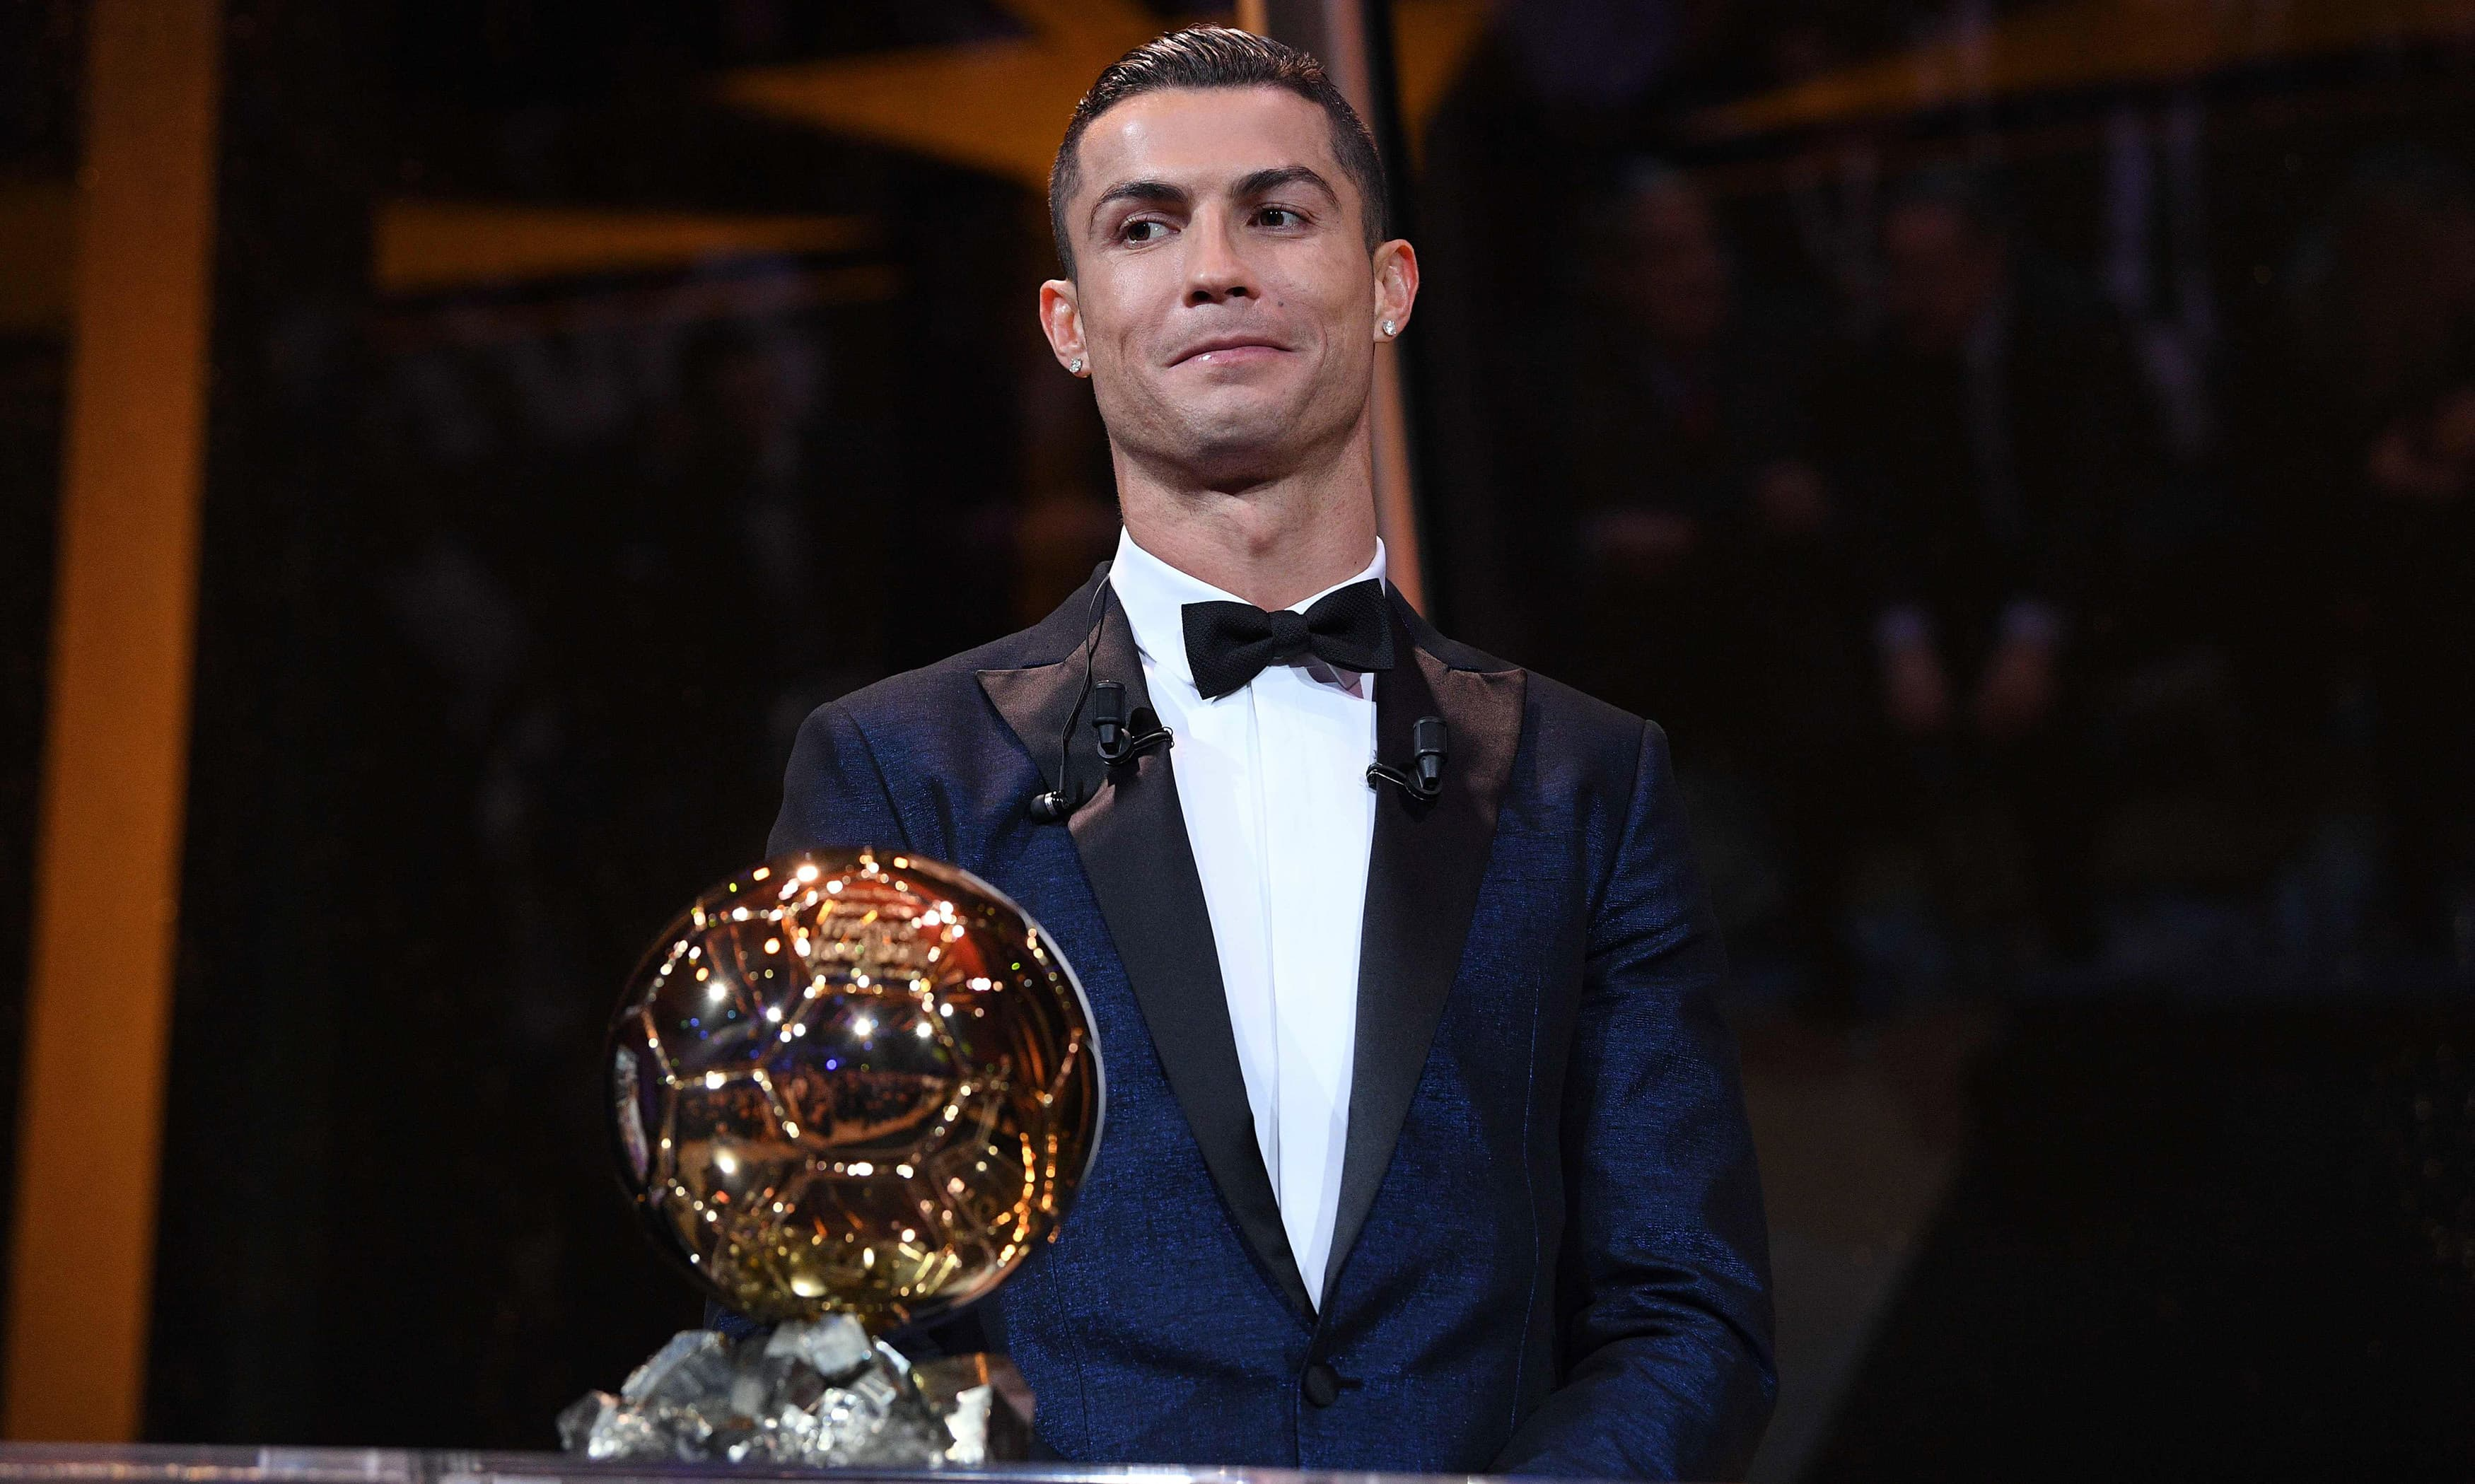 Cristiano Ronaldo pips Messi to win Ballon d'Or for record fifth time